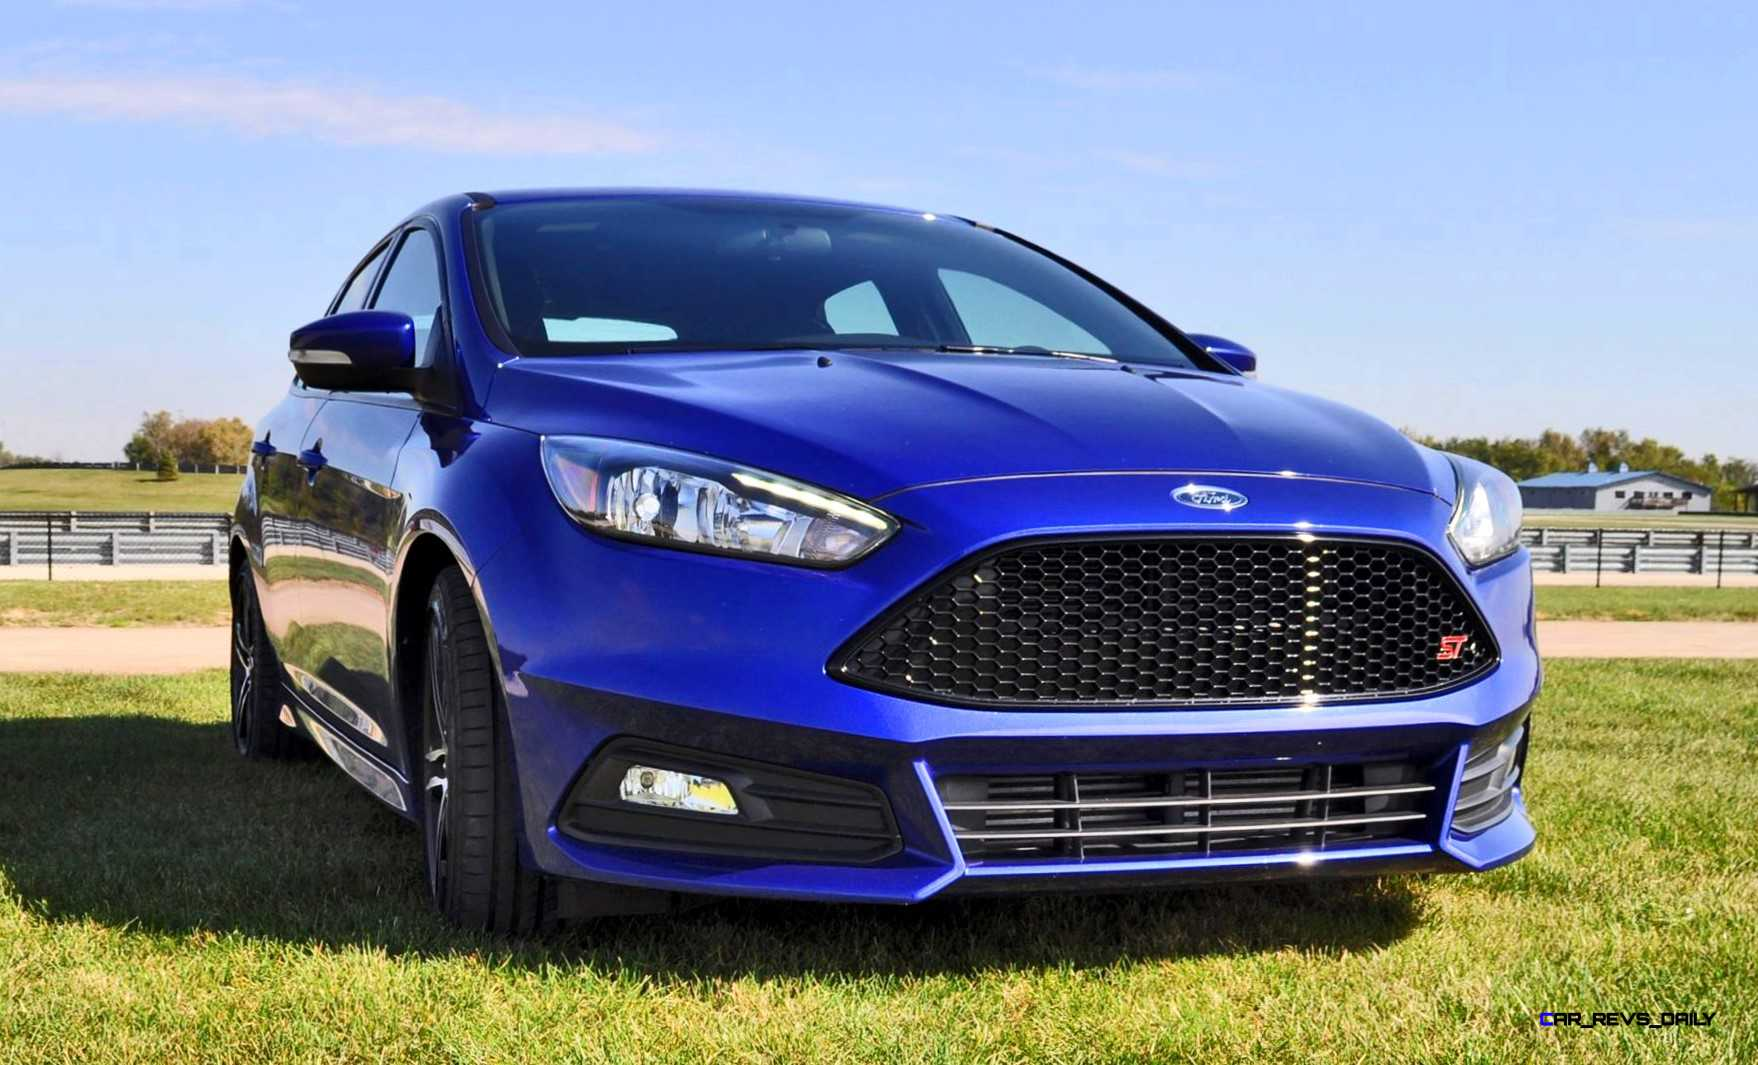 2016 ford focus st kona blue st1 flyaround in 120 pics hd video. Black Bedroom Furniture Sets. Home Design Ideas